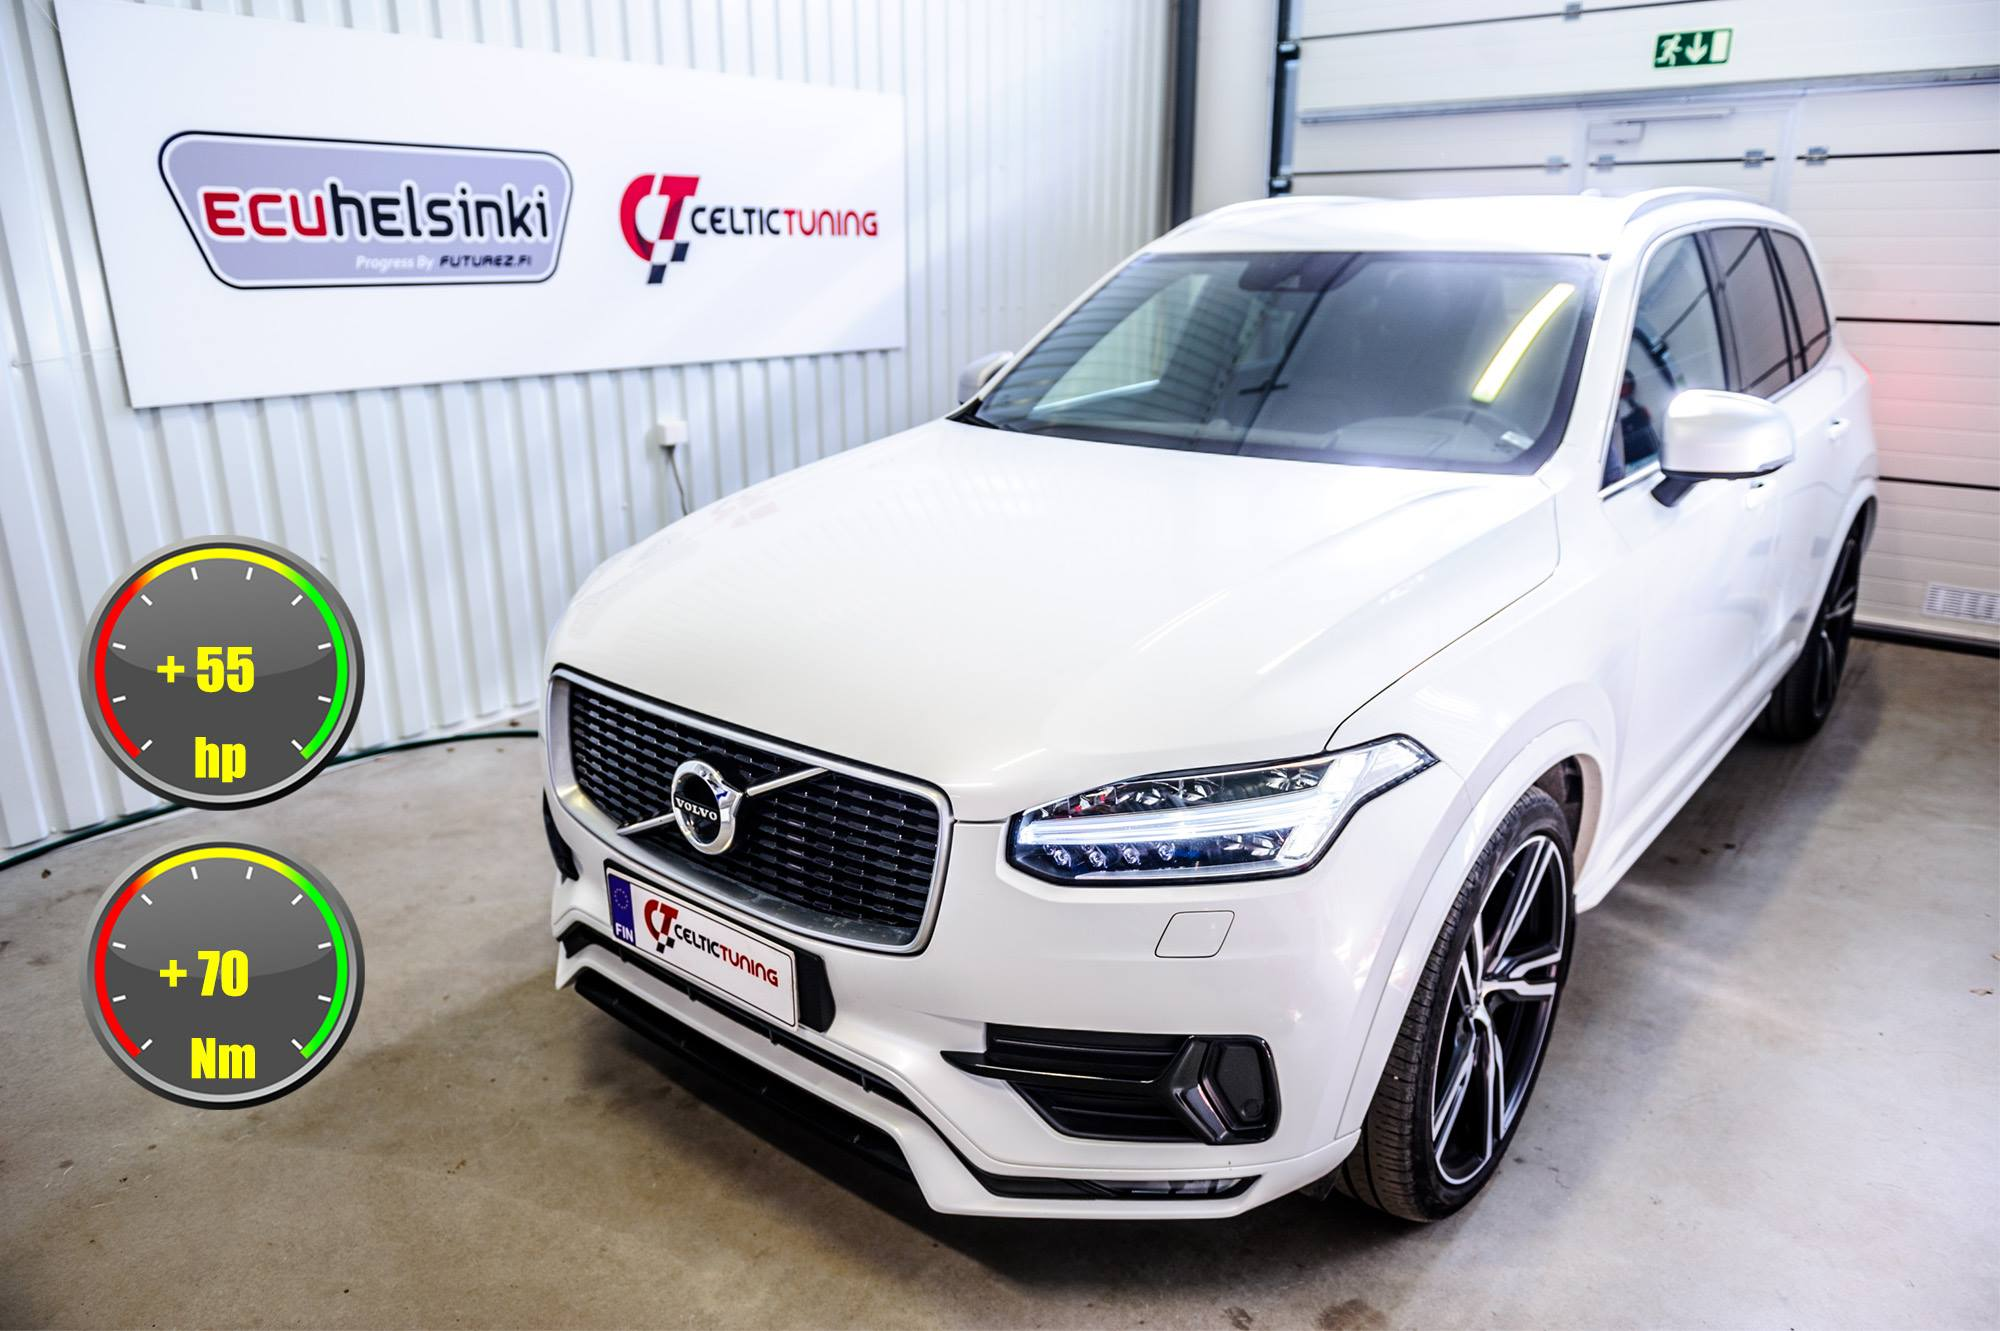 Volvo XC90 Optimointi Celtic tuning